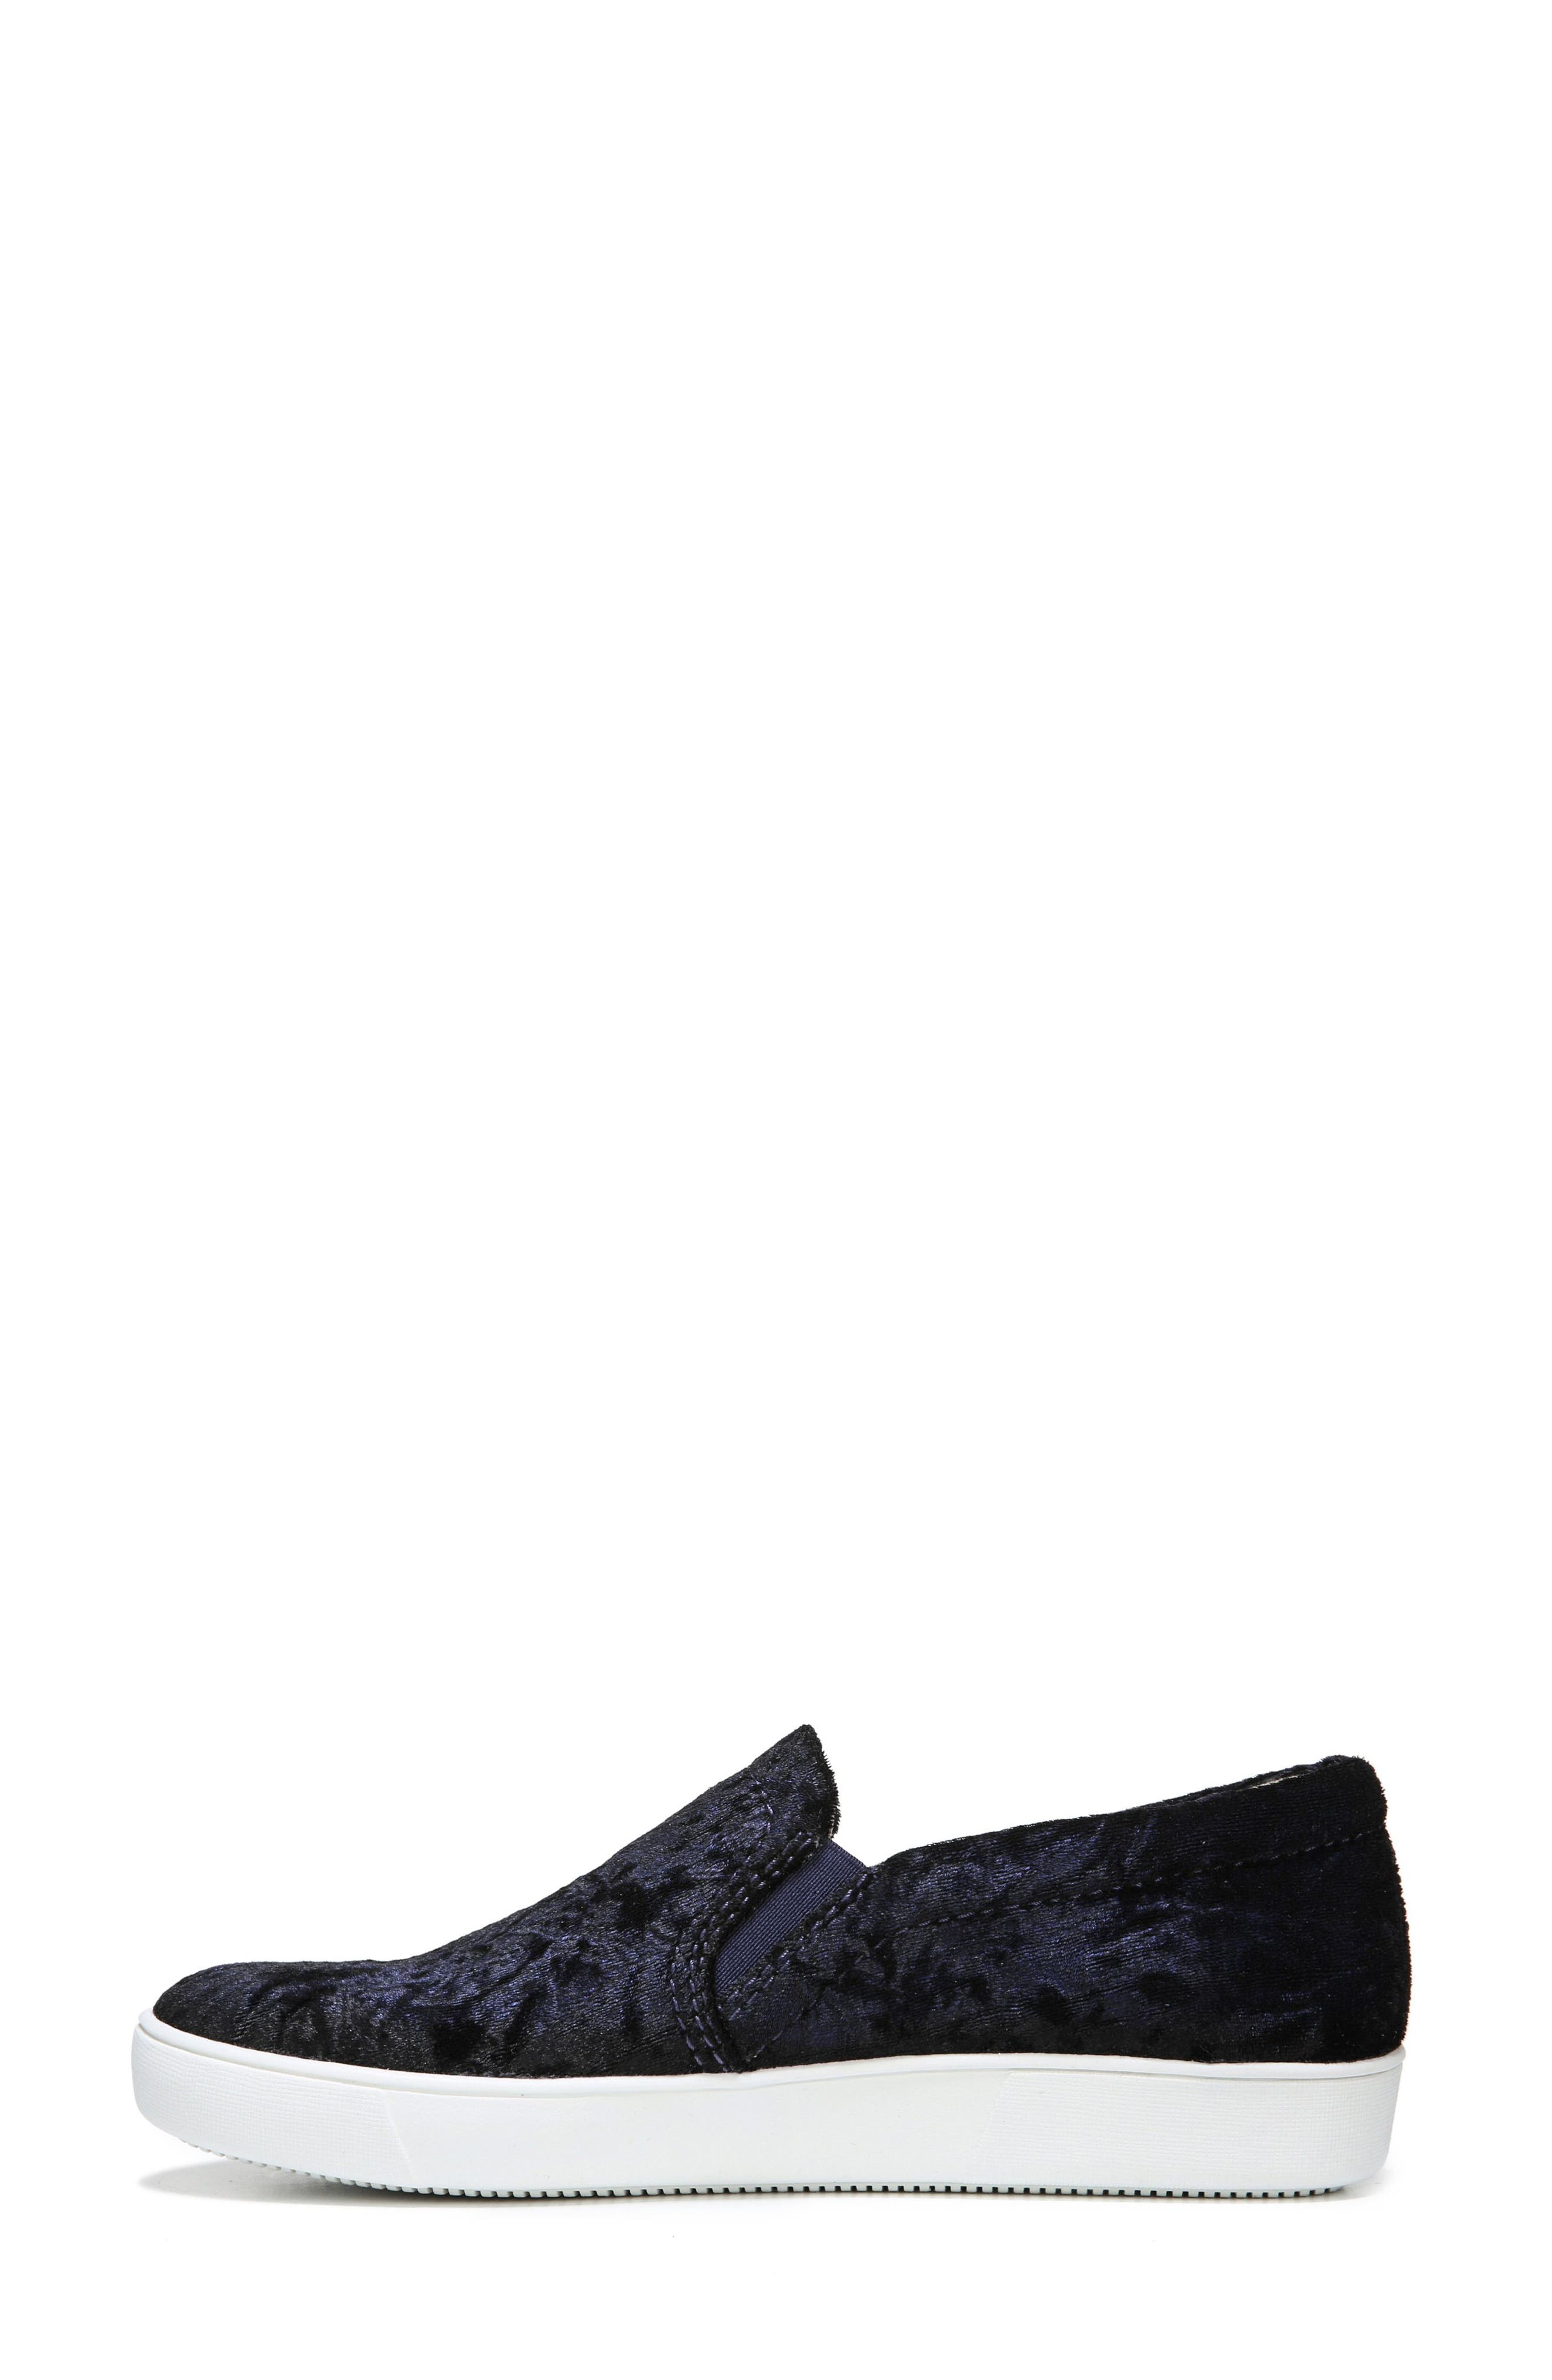 NATURALIZER, Marianne Slip-On Sneaker, Alternate thumbnail 7, color, NAVY VELVET